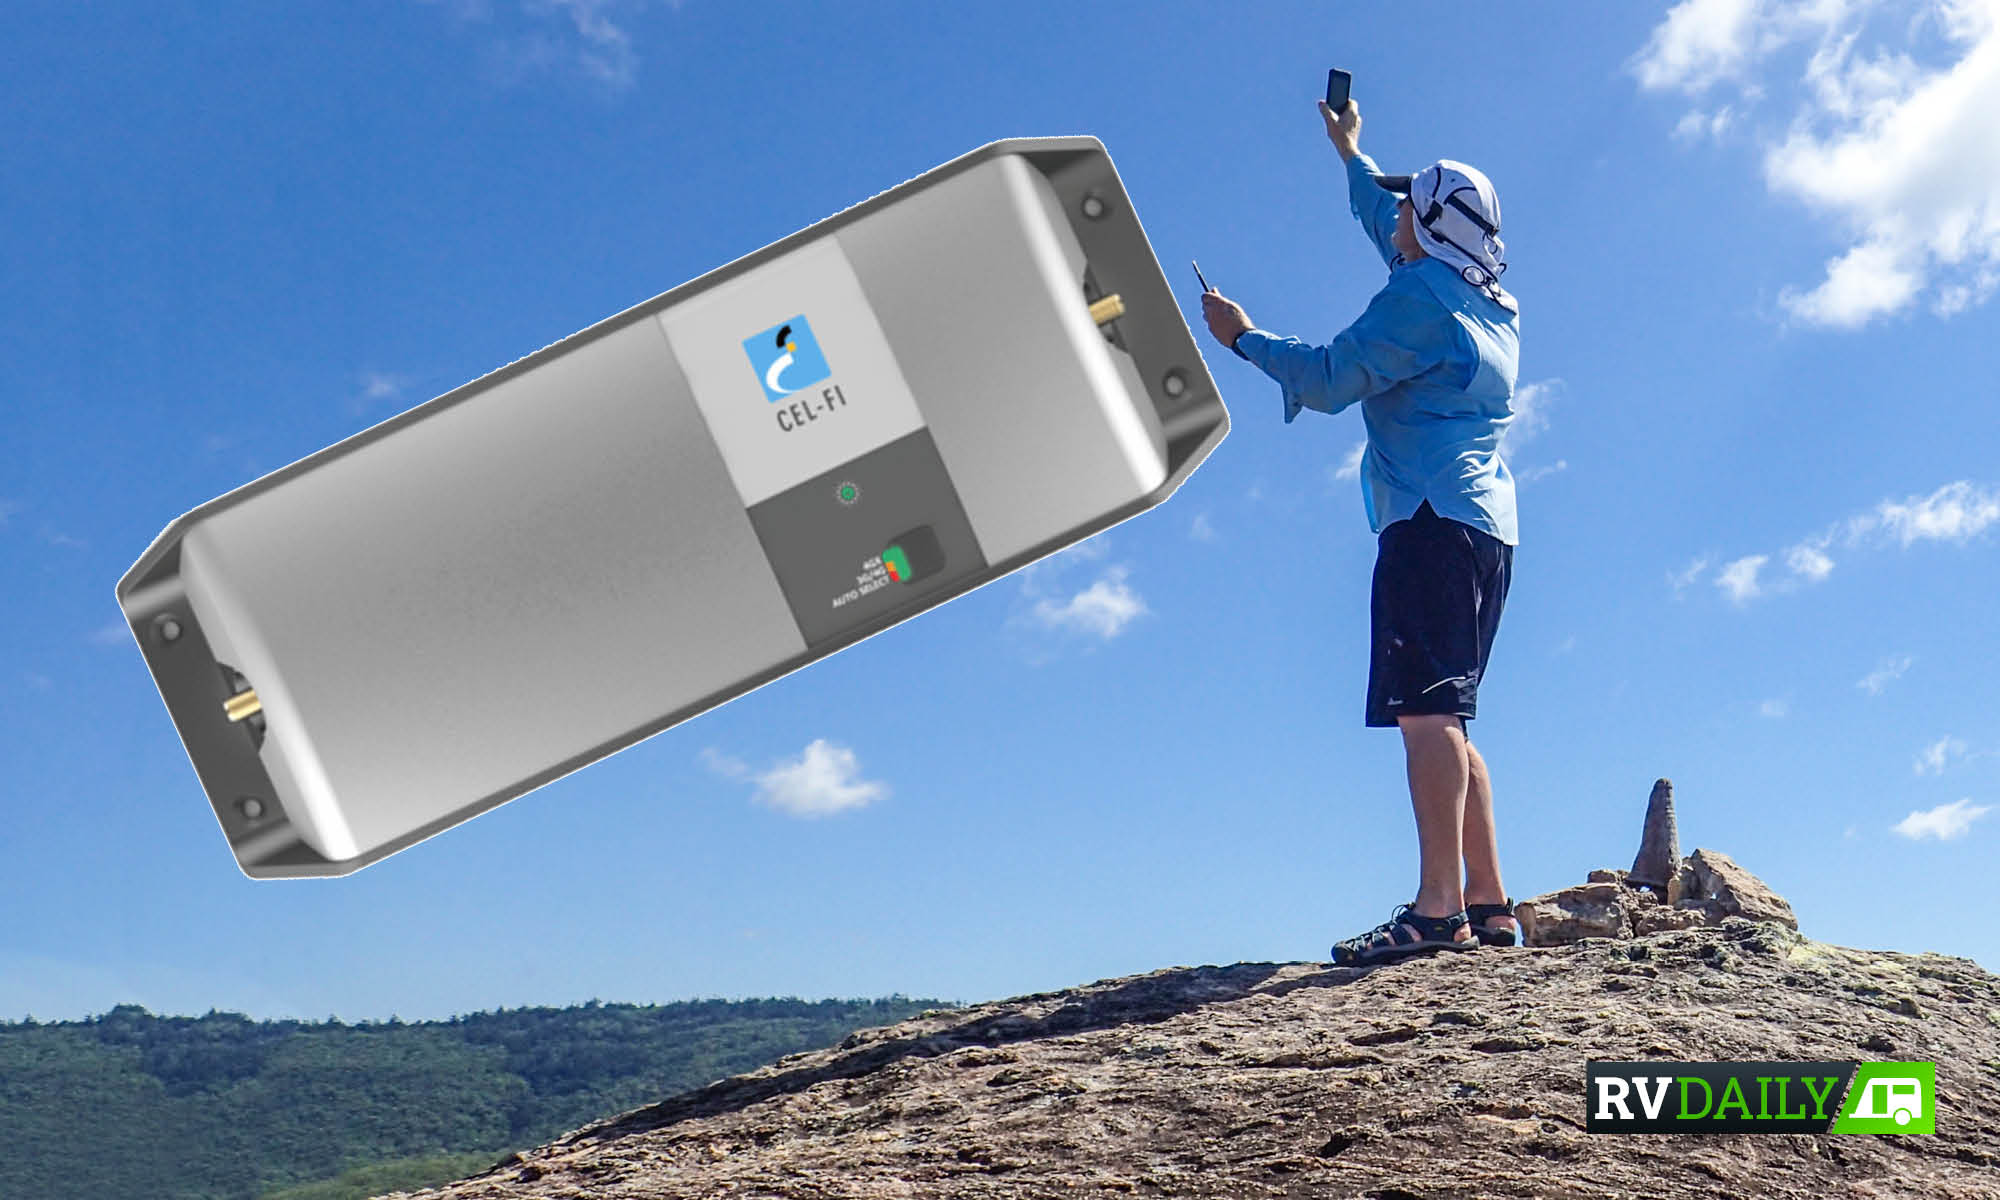 THE LEGAL WAY TO BOOST YOUR MOBILE SIGNAL WHEN TRAVELLING